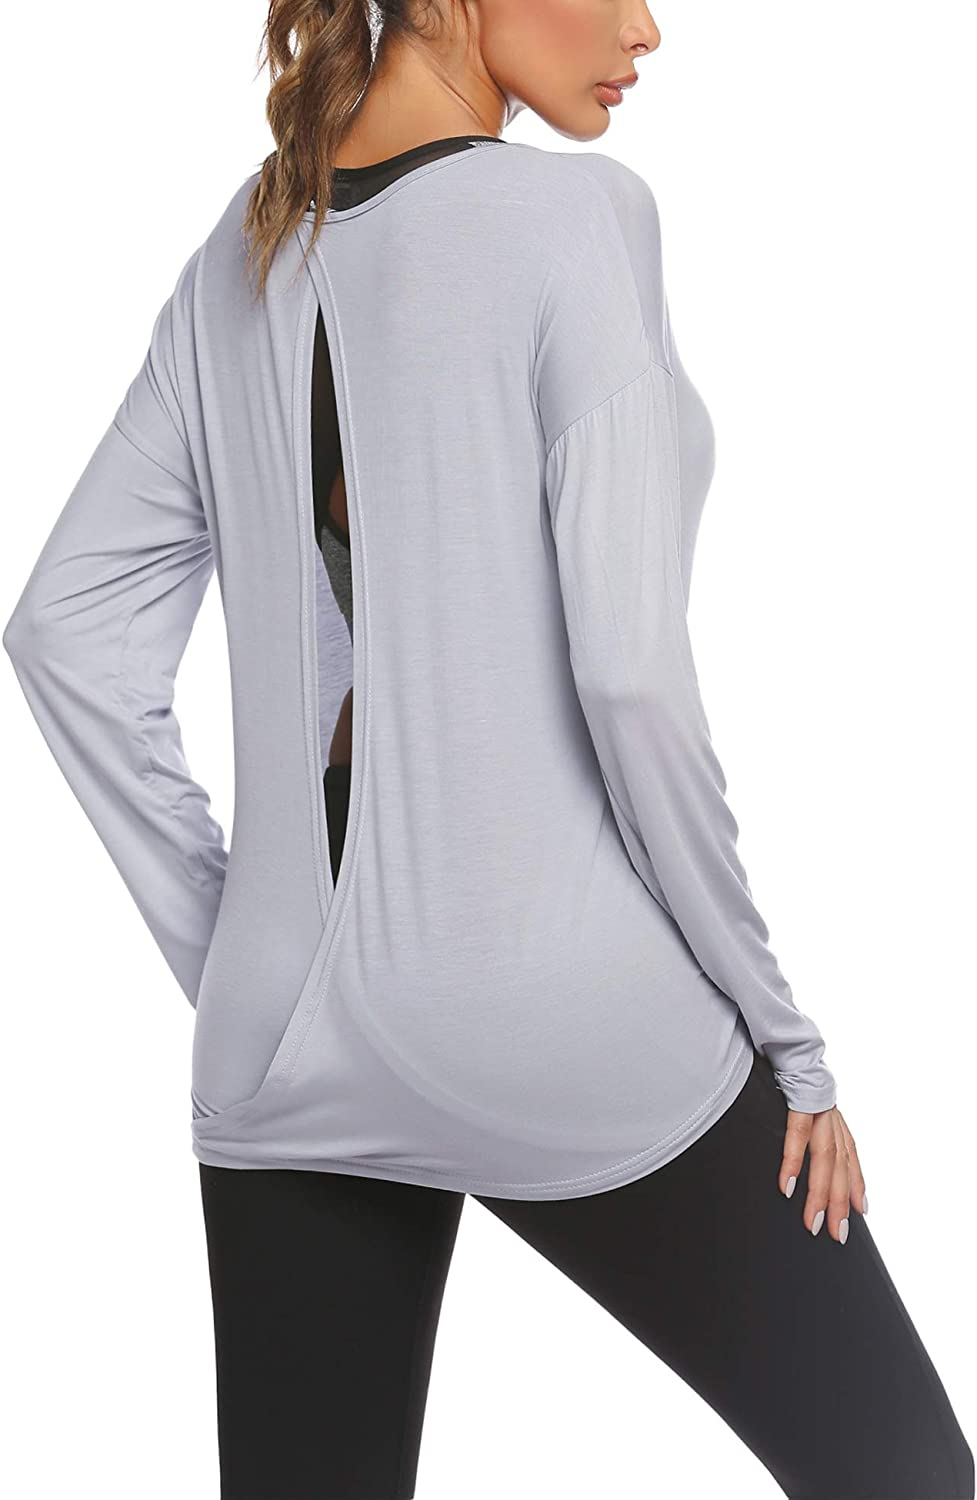 HOTLOOX Women's Long Sleeve Open Back Shirts Loose Backless Workout Yoga Gym Blouse Tops S-XXL